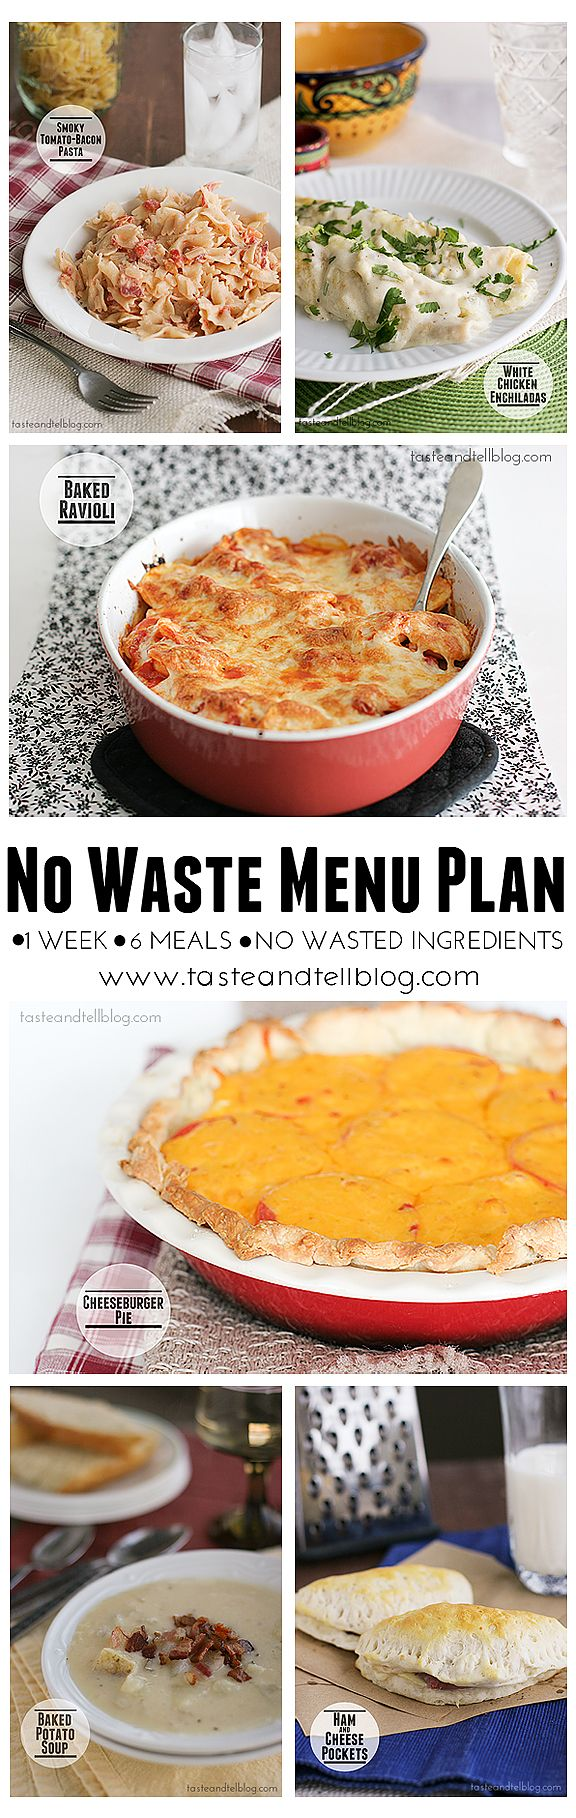 No Waste Menu Plan - 1 week, 6 meals, no leftover ingredients! | www.tasteandtellblog.com #menuplan #recipe #grocerylist